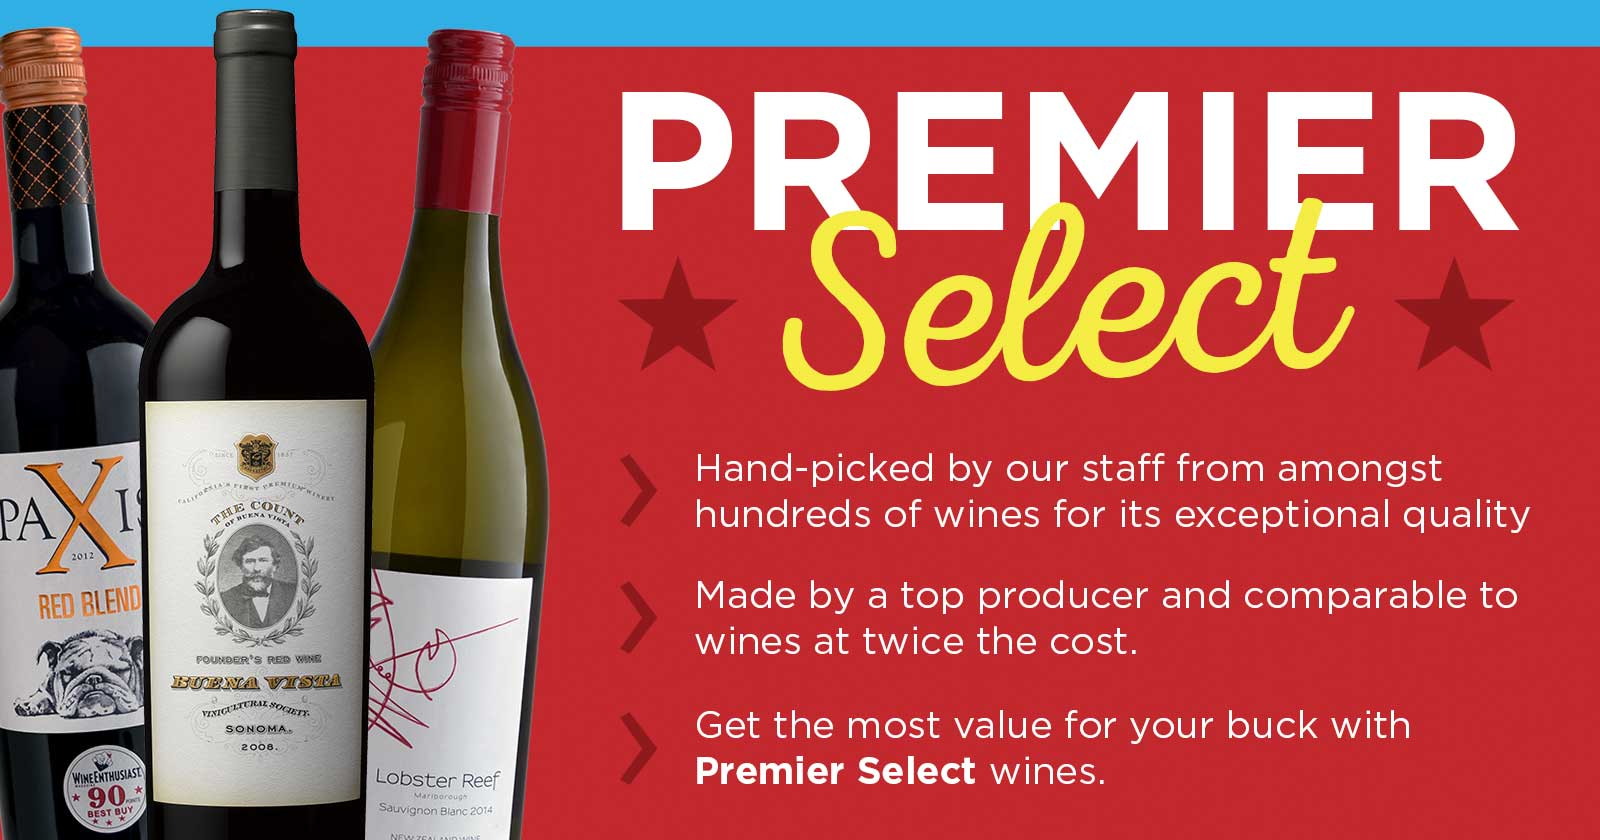 Premier Select Wines